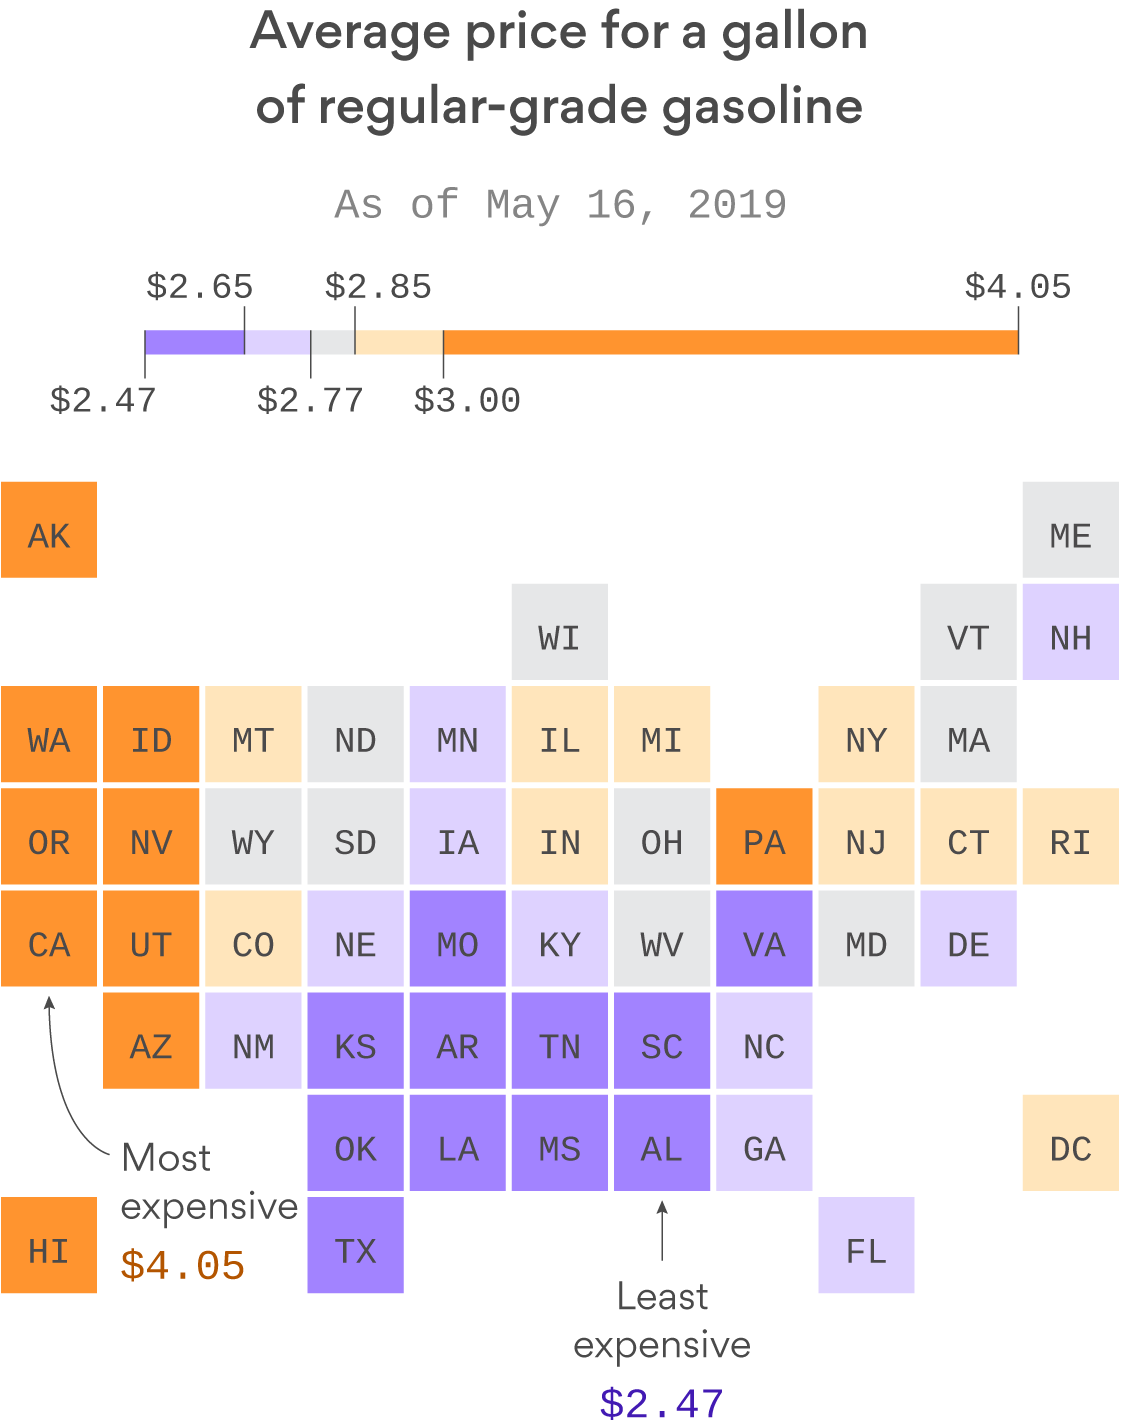 The states with the most expensive gas prices